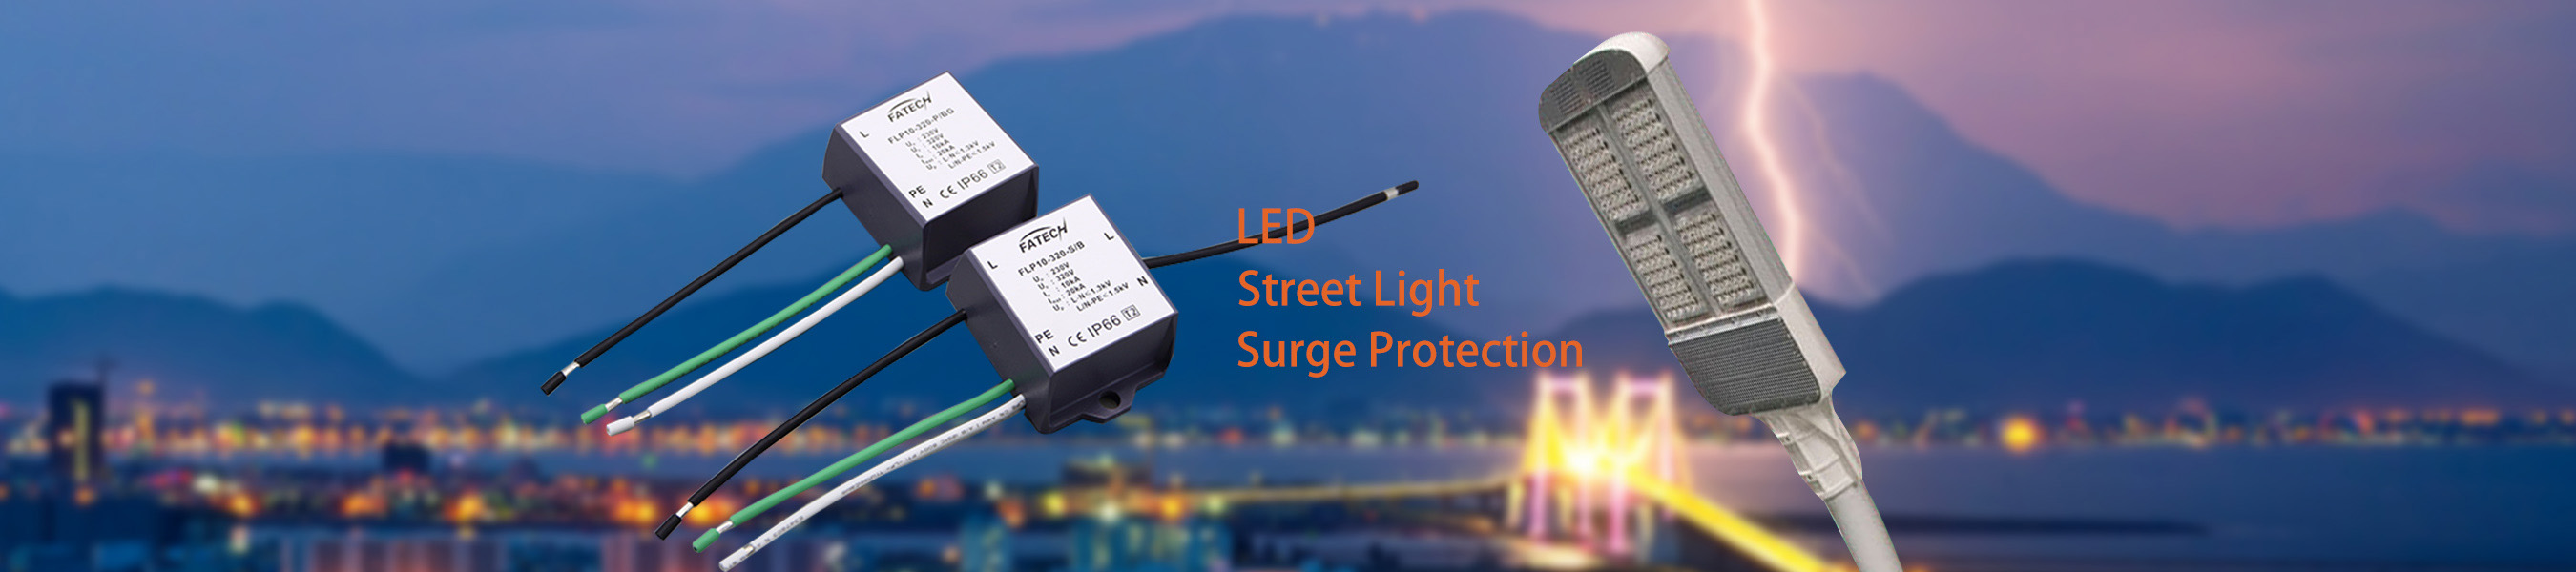 LED Street light surge protection